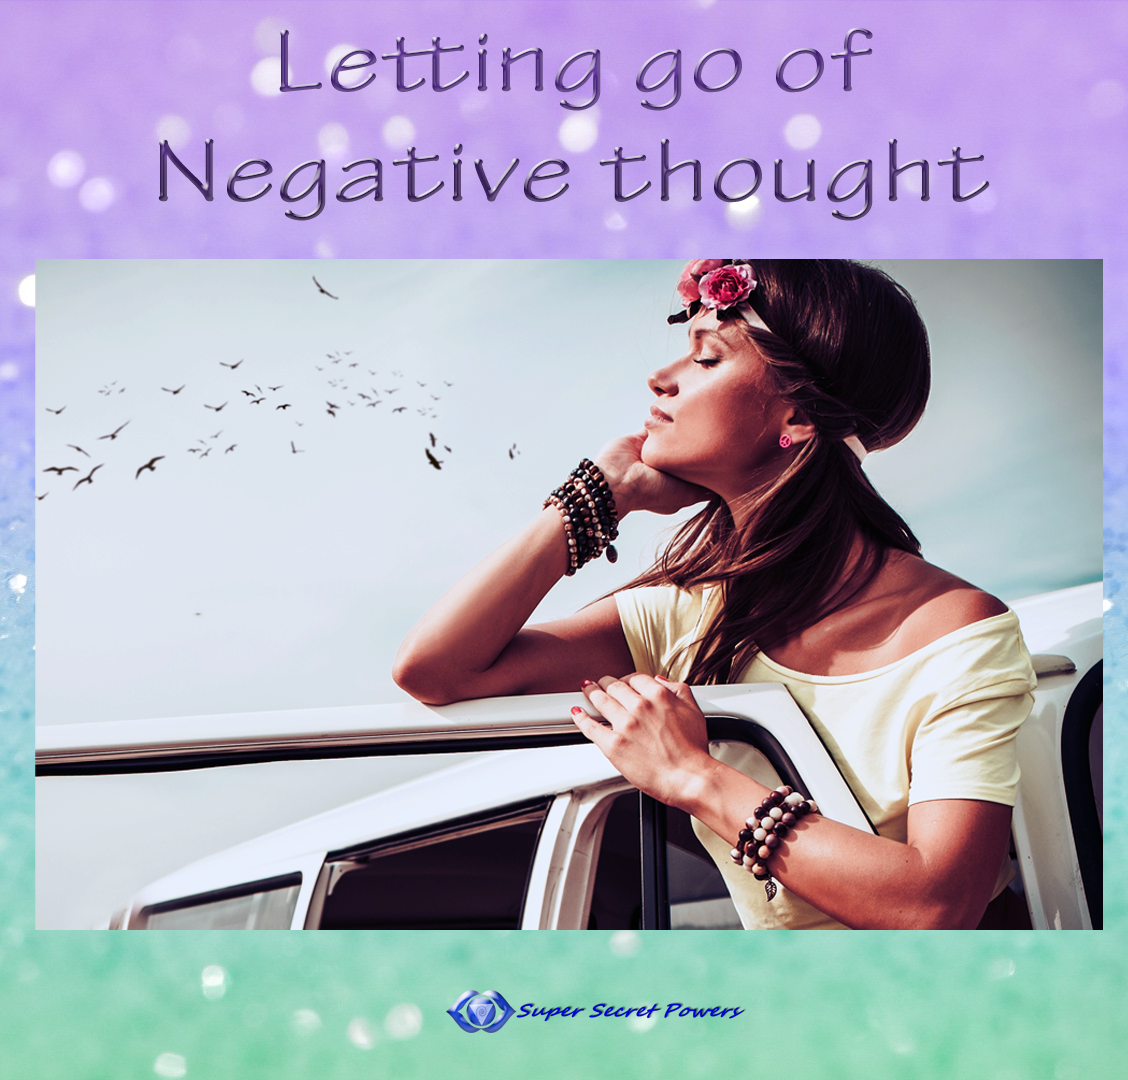 Letting go of negative thought